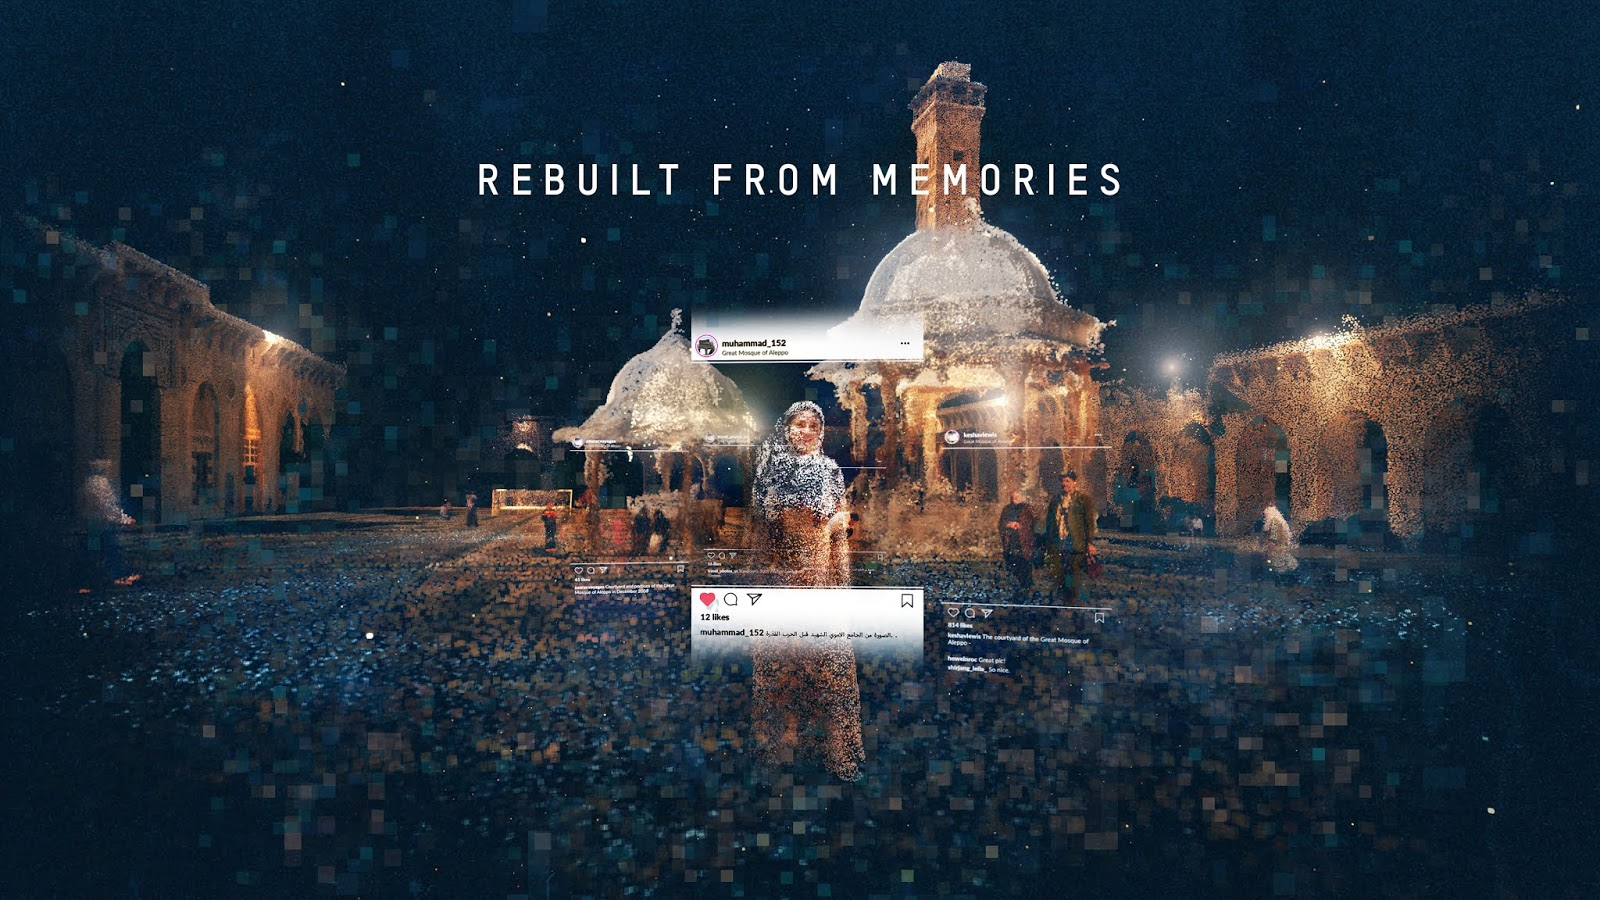 REBUILT FROM MEMORIES – our new project gives you a view into the collective memory of Aleppo before the war: The cultural life at destroyed historical sites reconstructed from instagram pictures. In 360° videos and VR you can revisit the Great Mosque, the Citadel of Aleppo and the Souk Saqatiya.